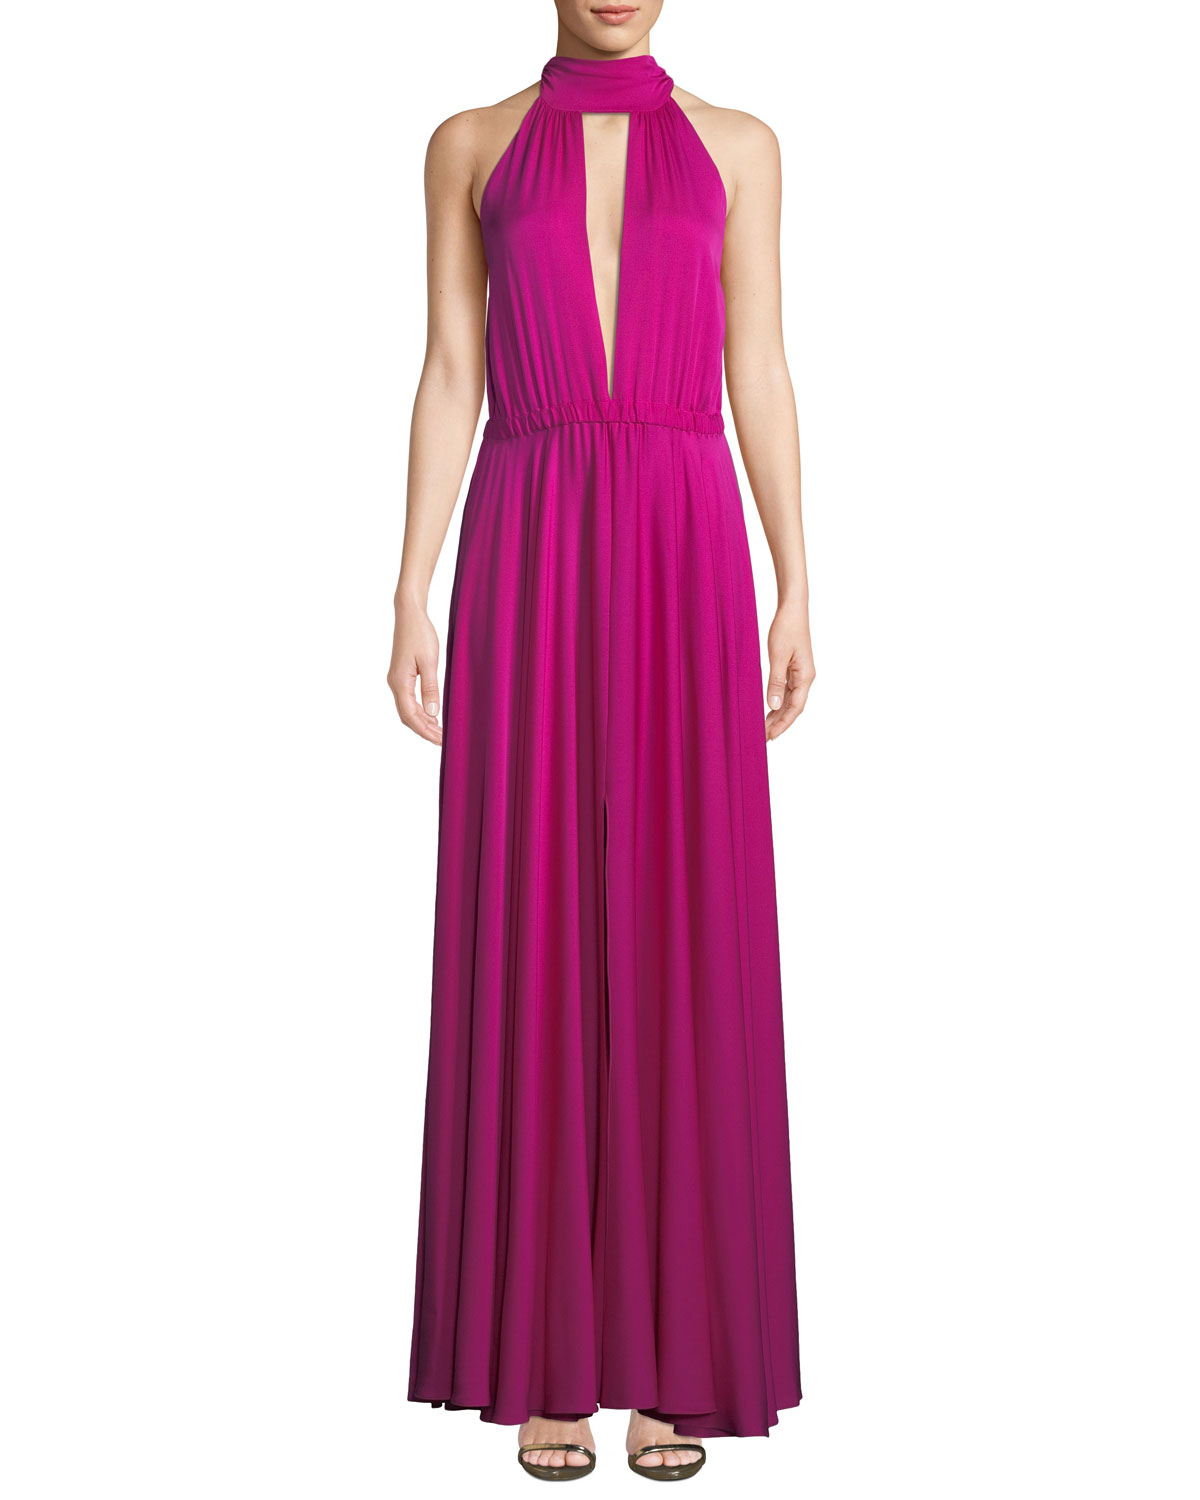 0430c621c845 Buy milly clothing for women - Best women's milly clothing shop - Cools.com